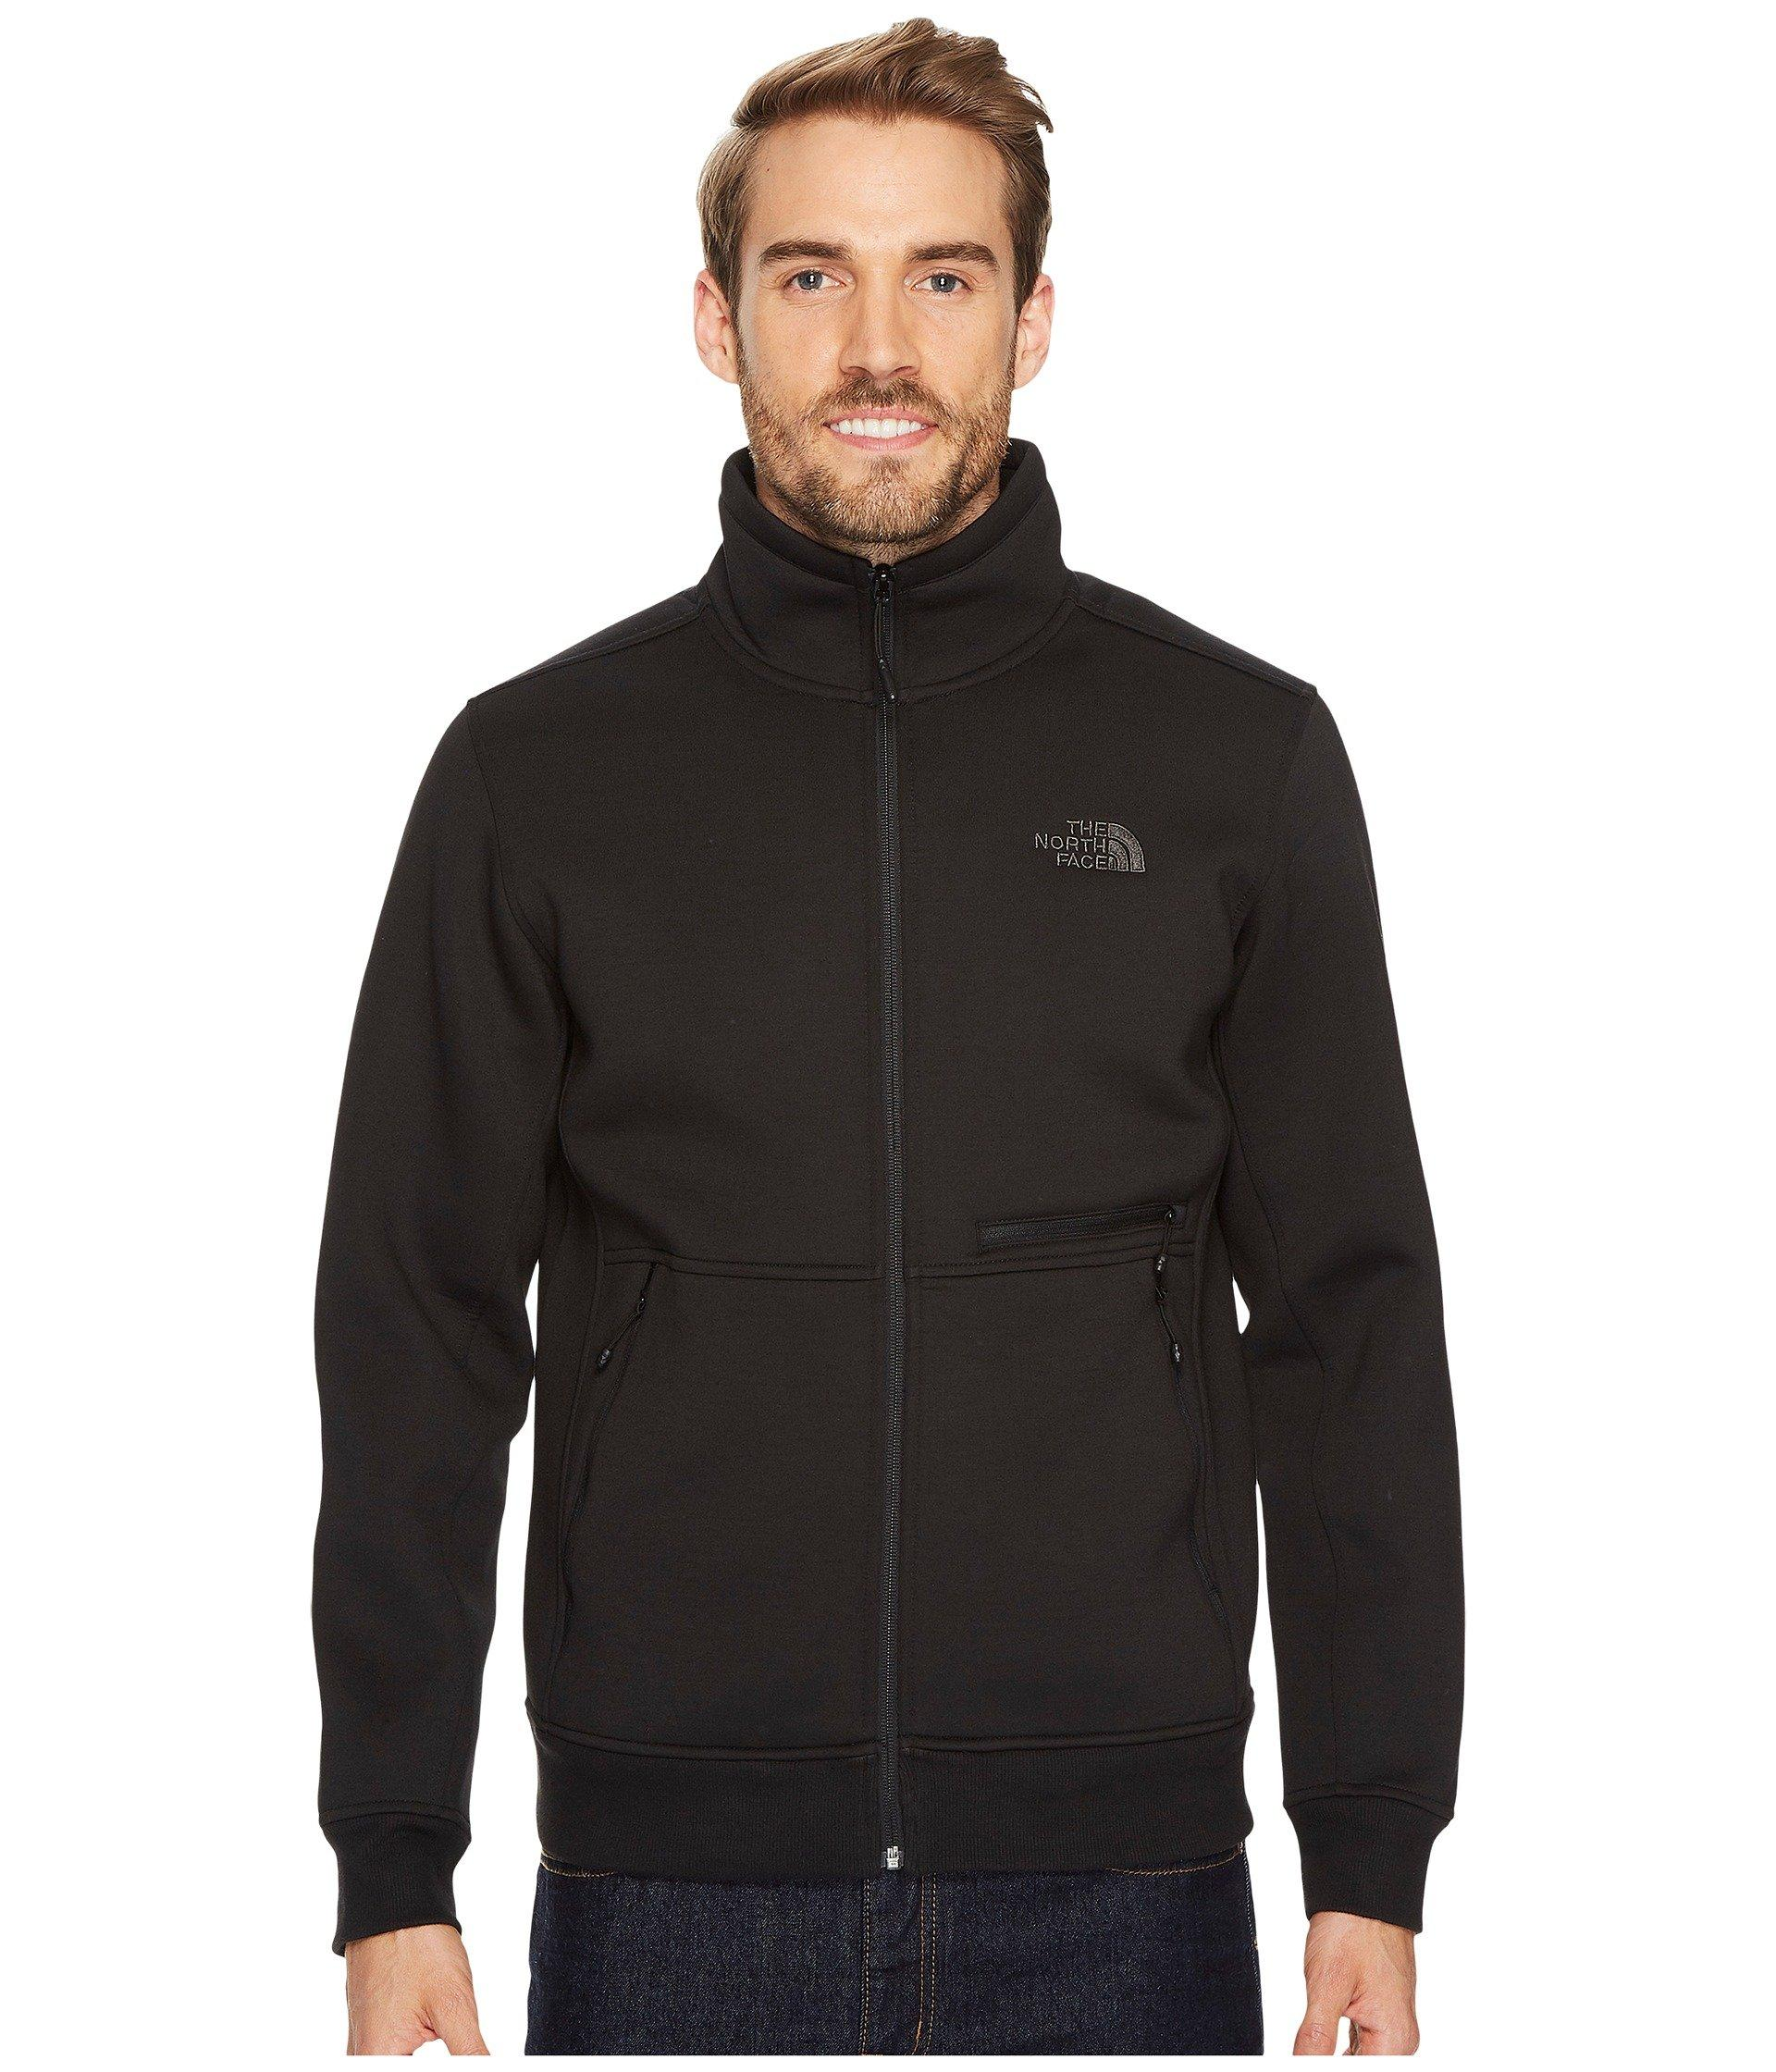 The North Face Thermal 3d Jacket In Tnf Black 1